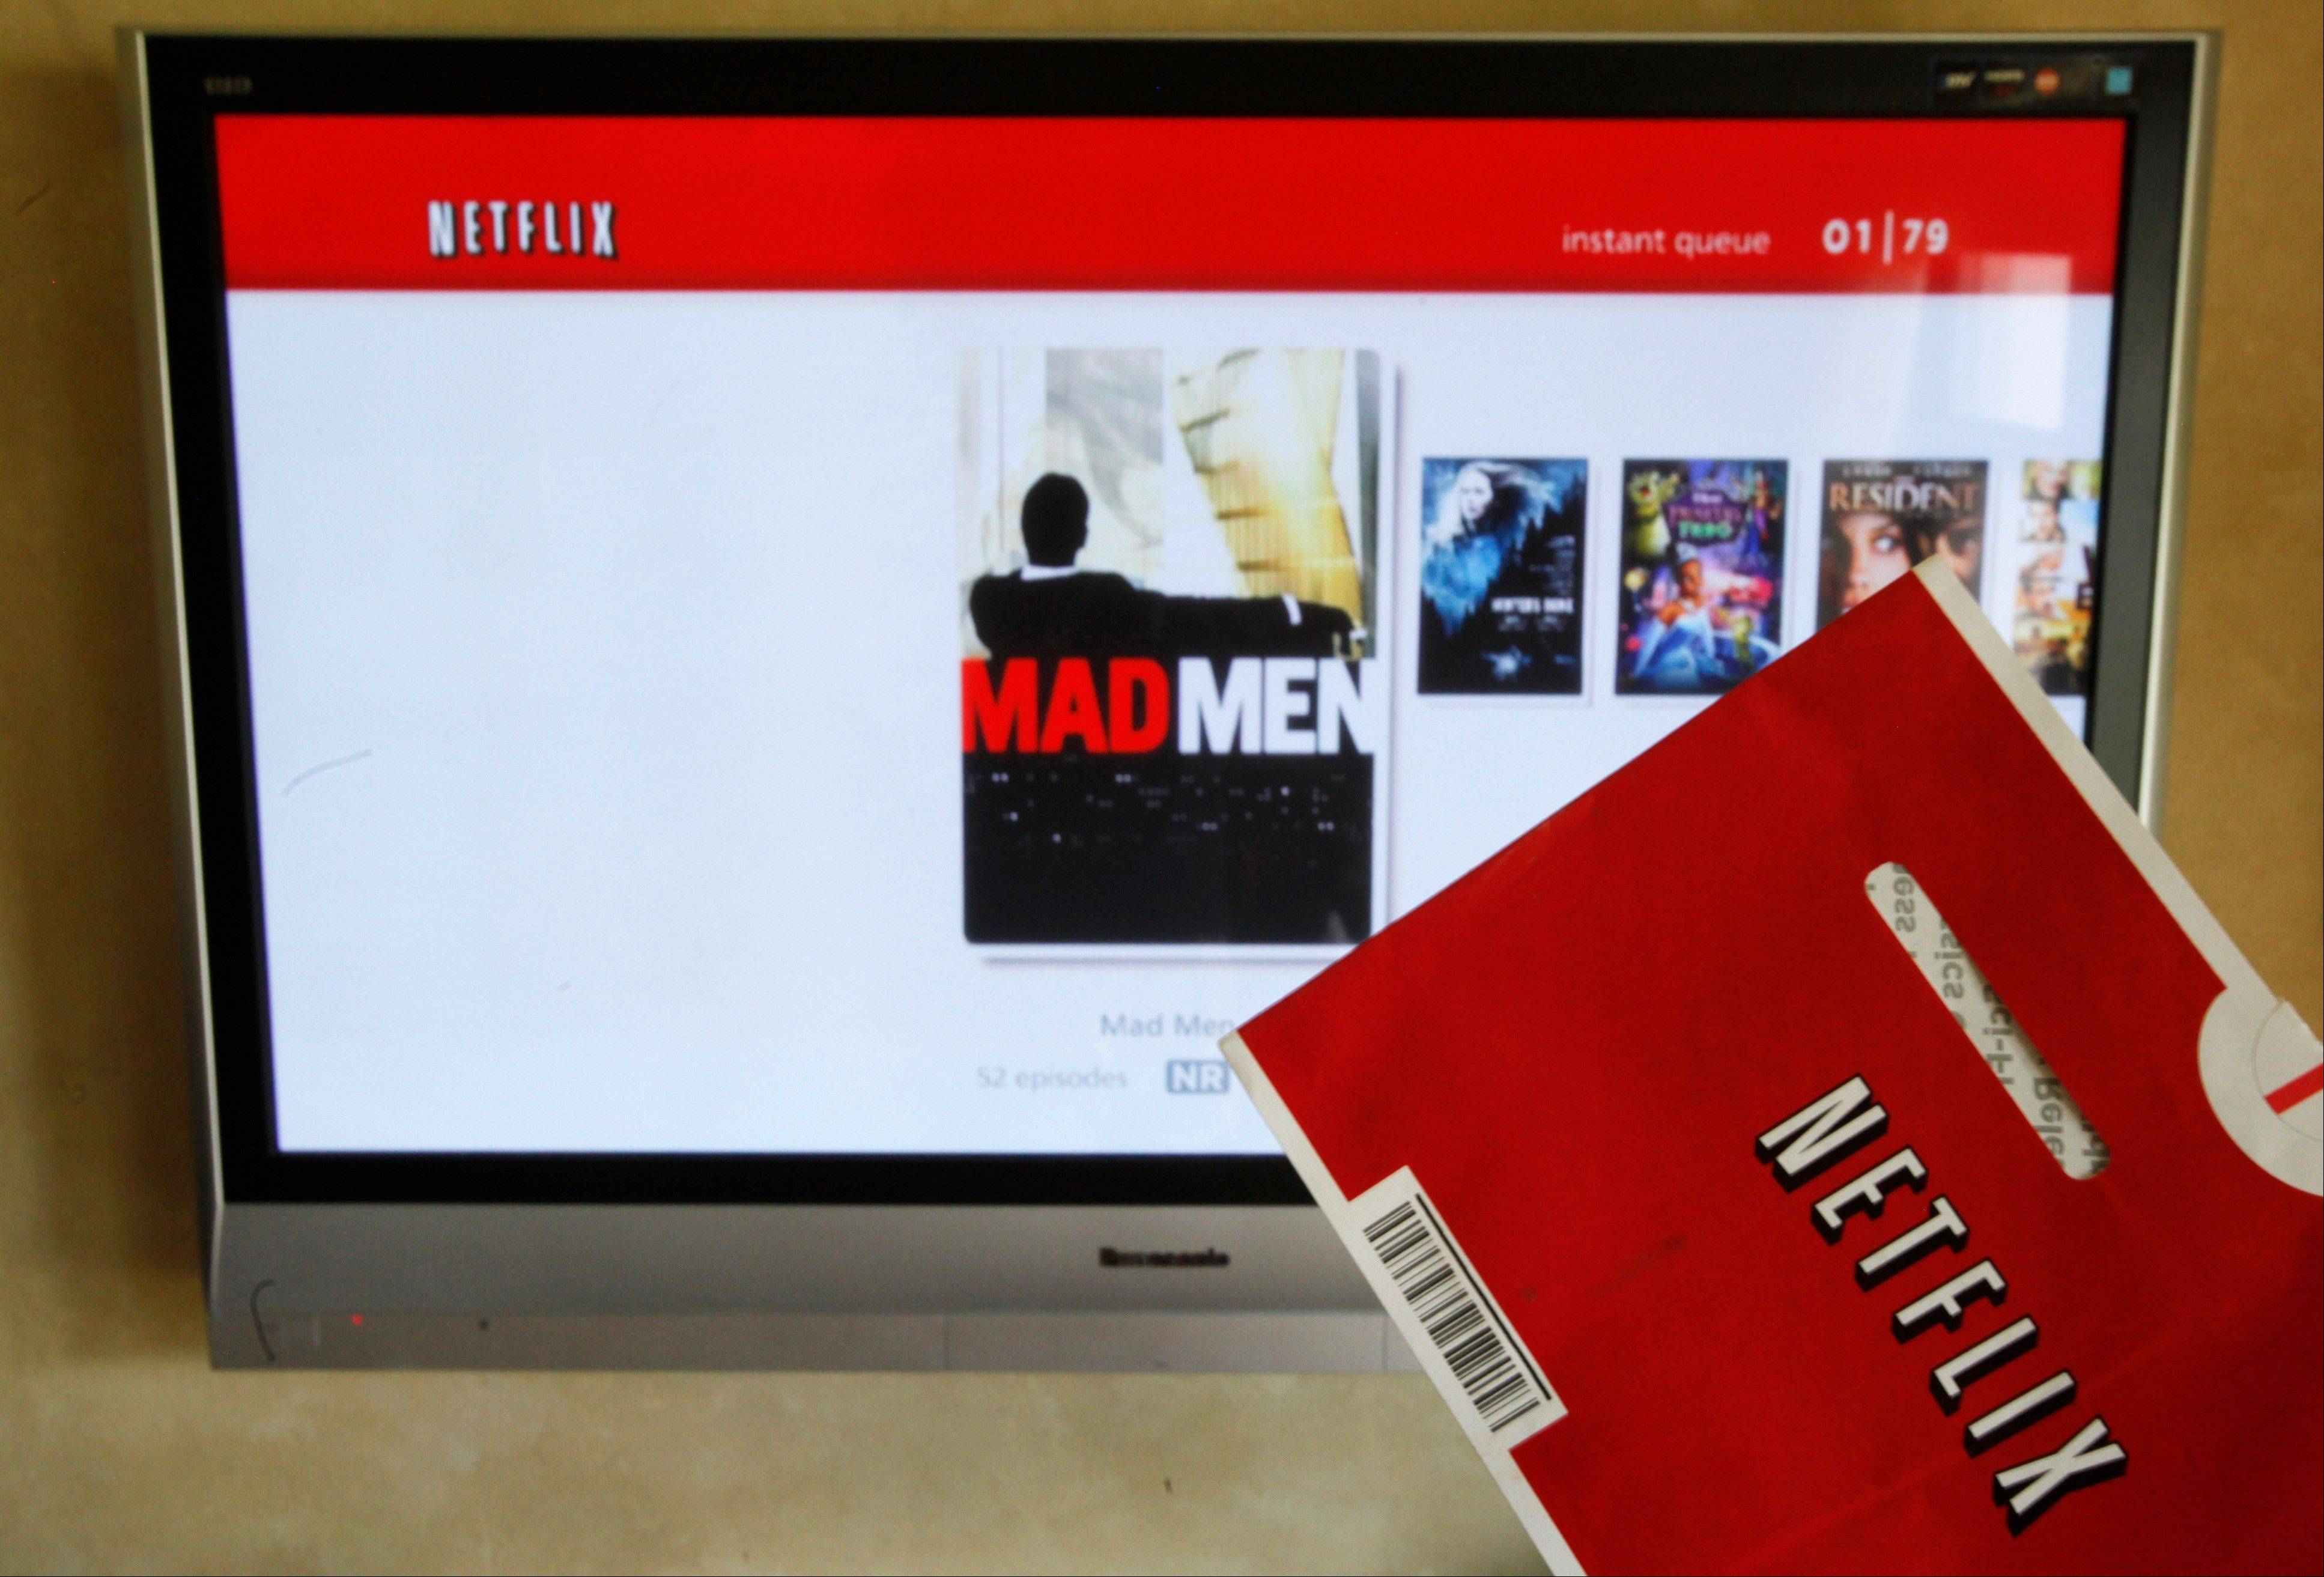 A Netflix DVD envelope and Netflix on-screen television menu are shown in Surfside, Fla. Thinking about how you use your Netflix, Hulu or other video account, can lead to potentially cost-saving measures, depending on what features you desire and actually use the most.